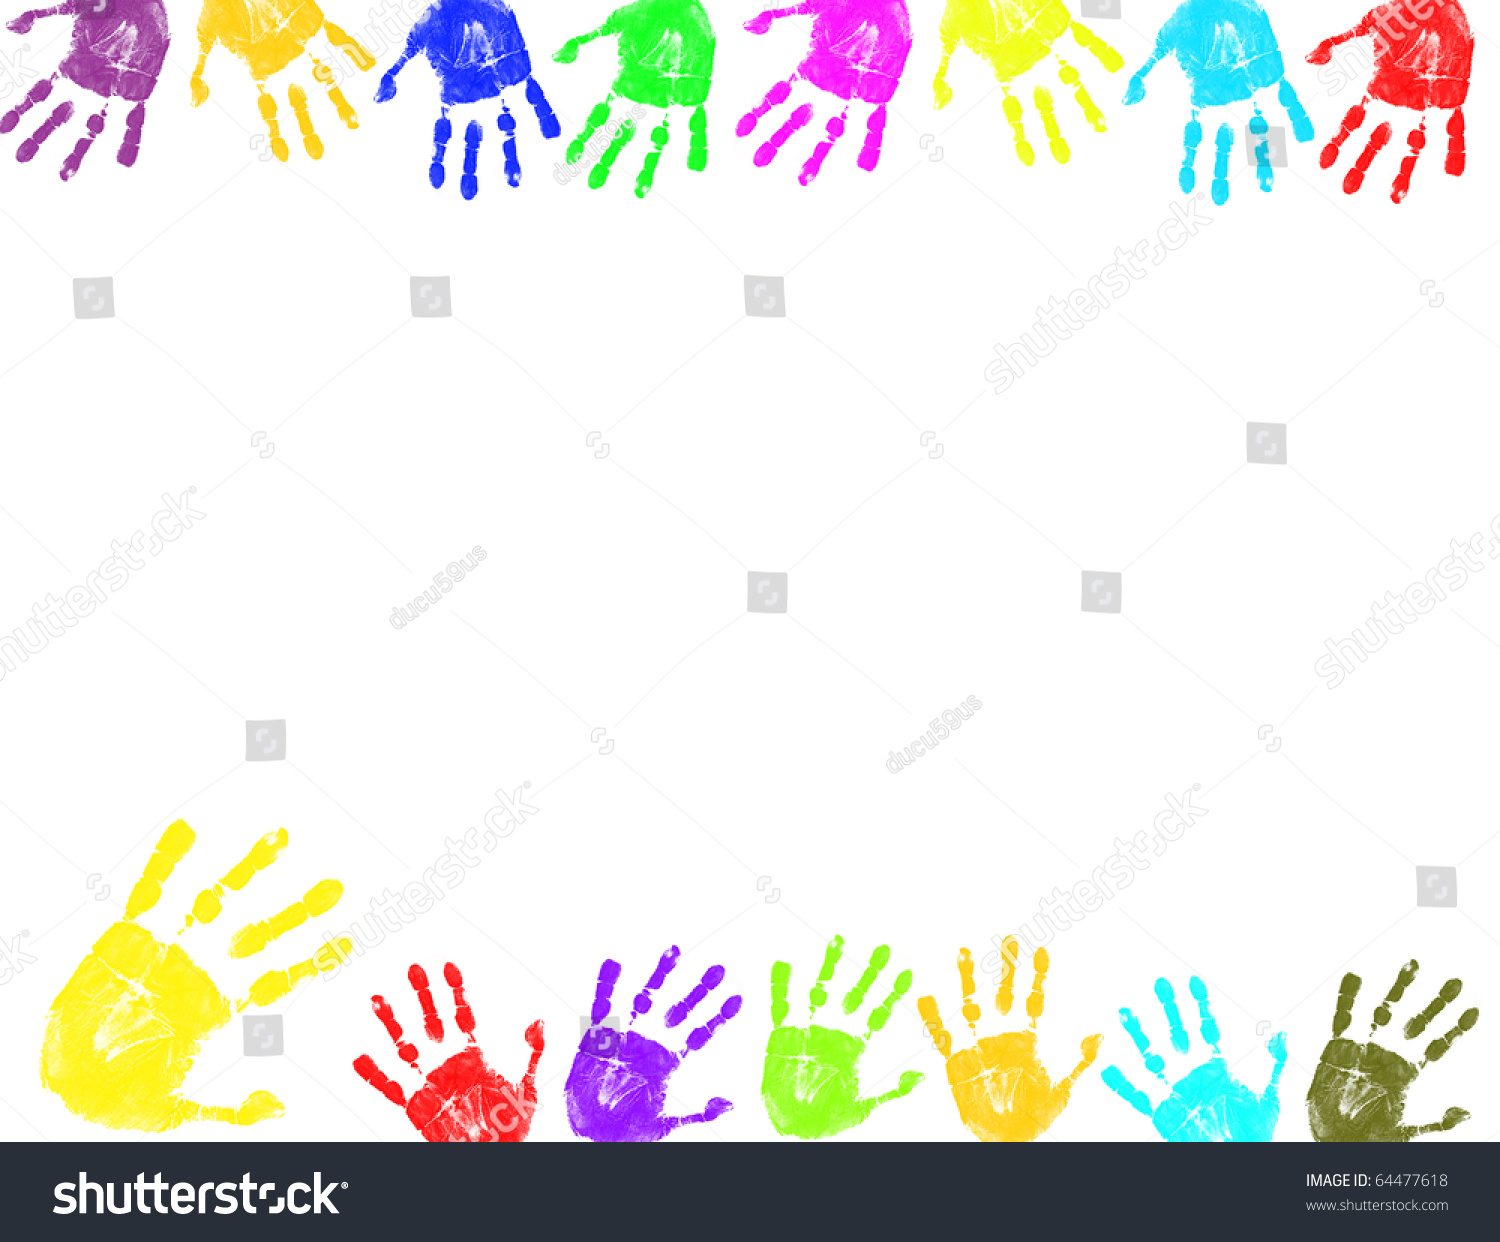 Color Abstract Vector Background Text Frame Stock Vector: Colorful Hand Prints Backgroundframe Text Stock Vector